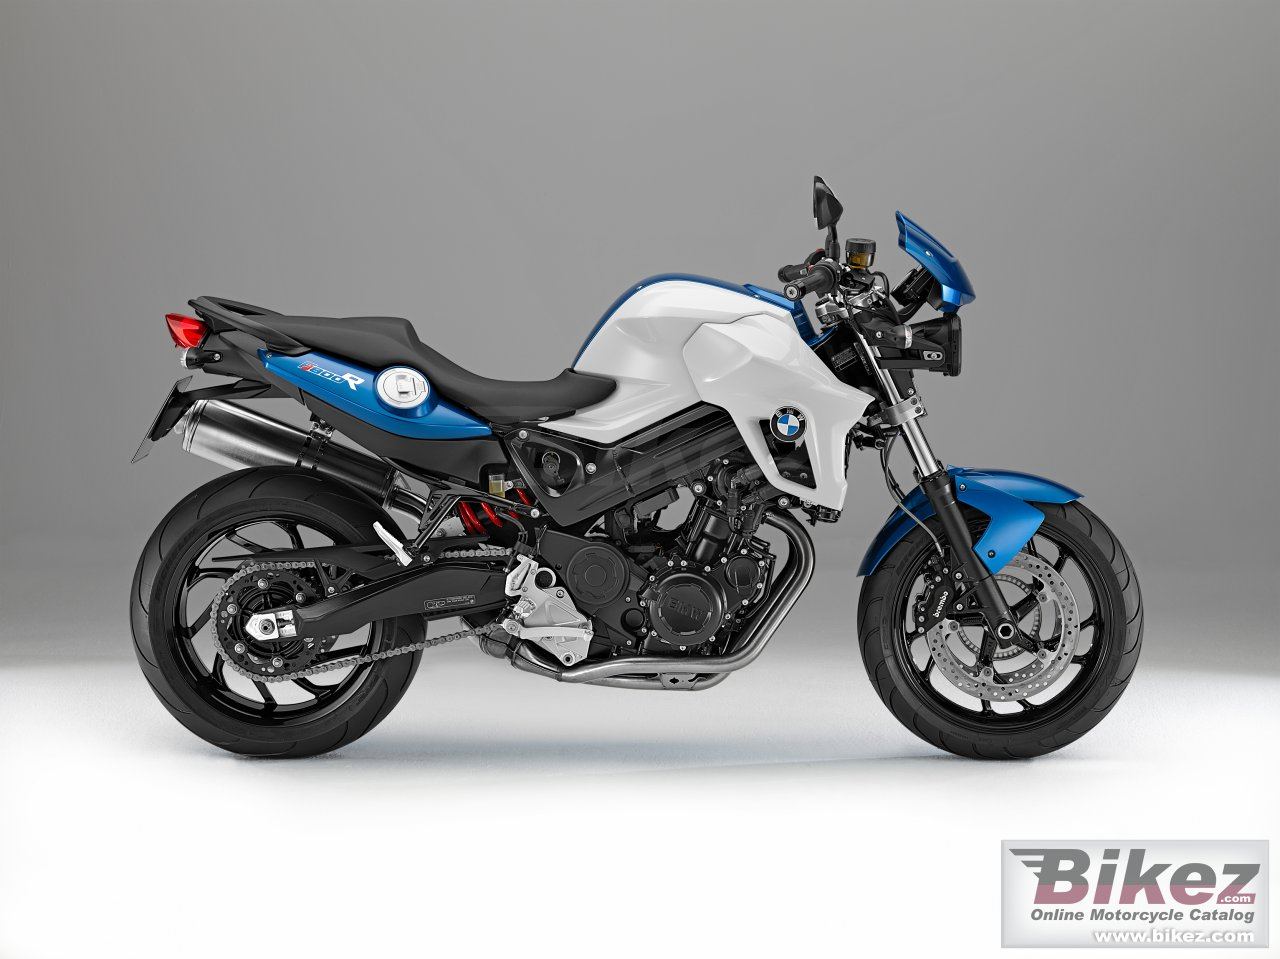 Big BMW f 800 r picture and wallpaper from Bikez.com